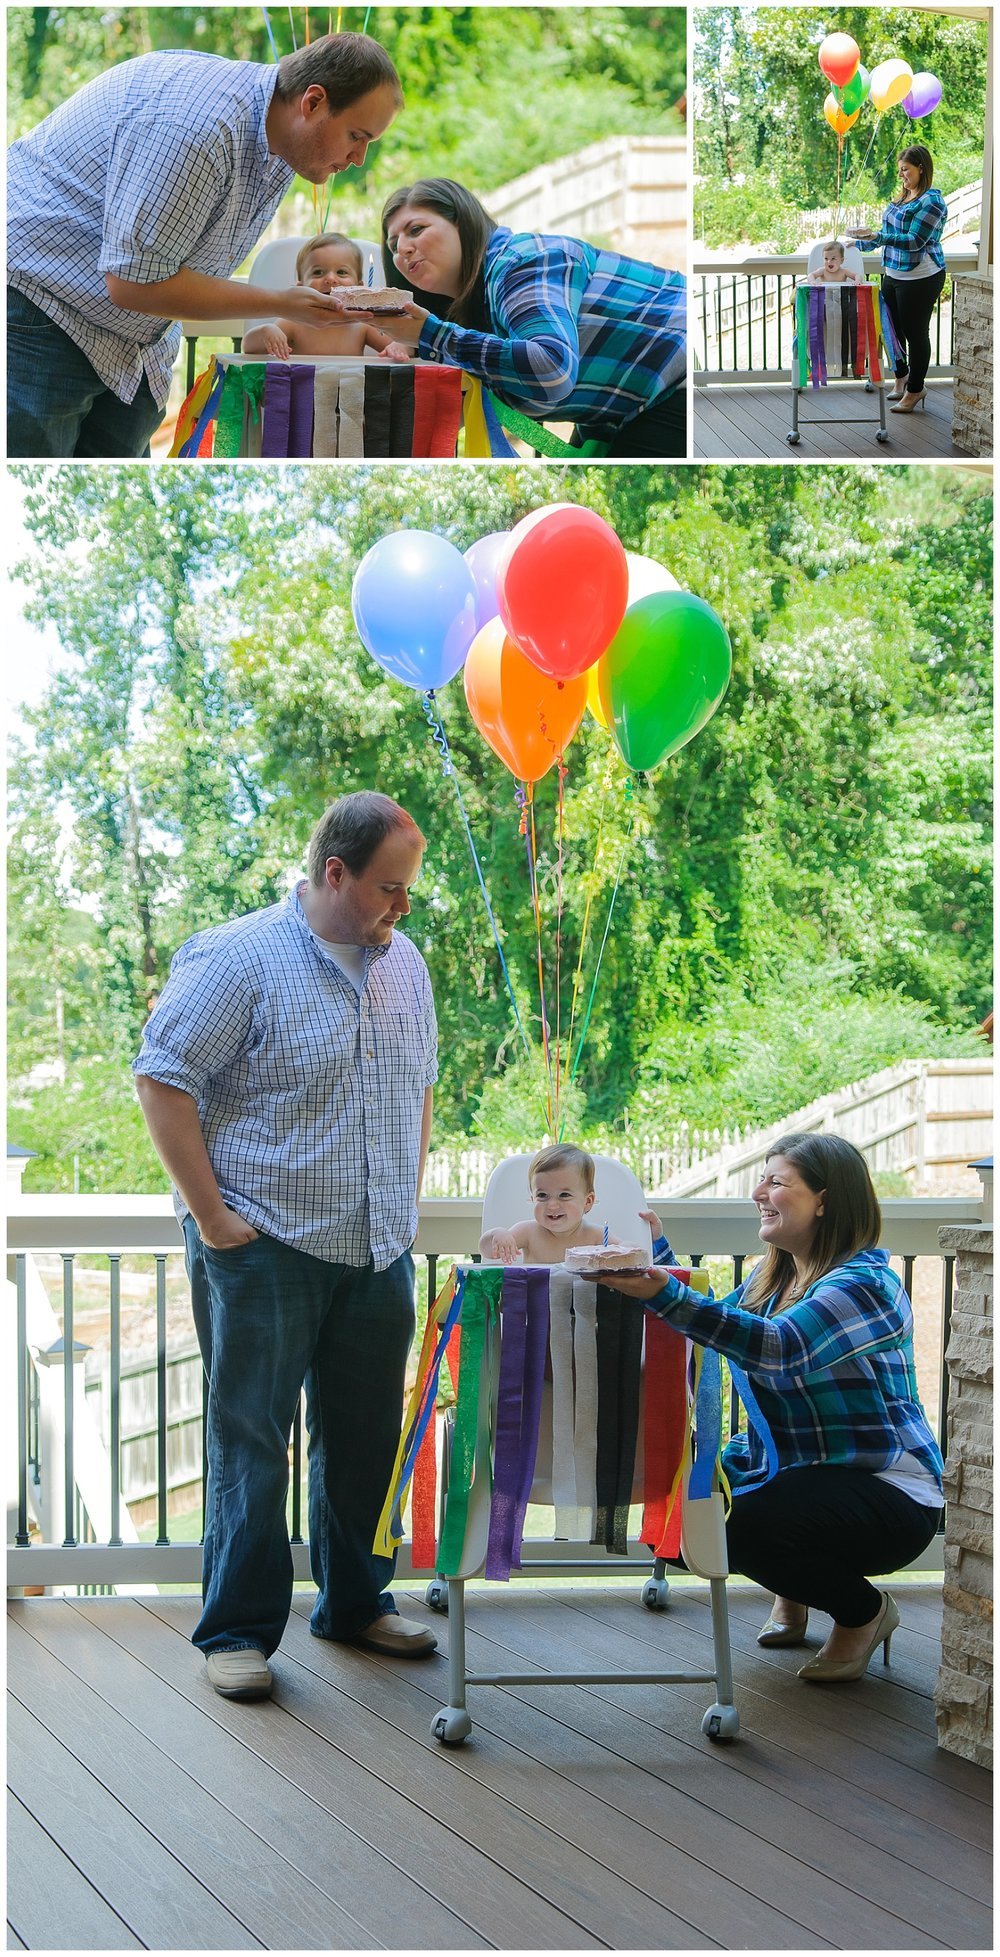 these are stacked images of a mother, father, and their one year old son. they are outside with balloons and birthday cake and the child is about to have a cake smash.